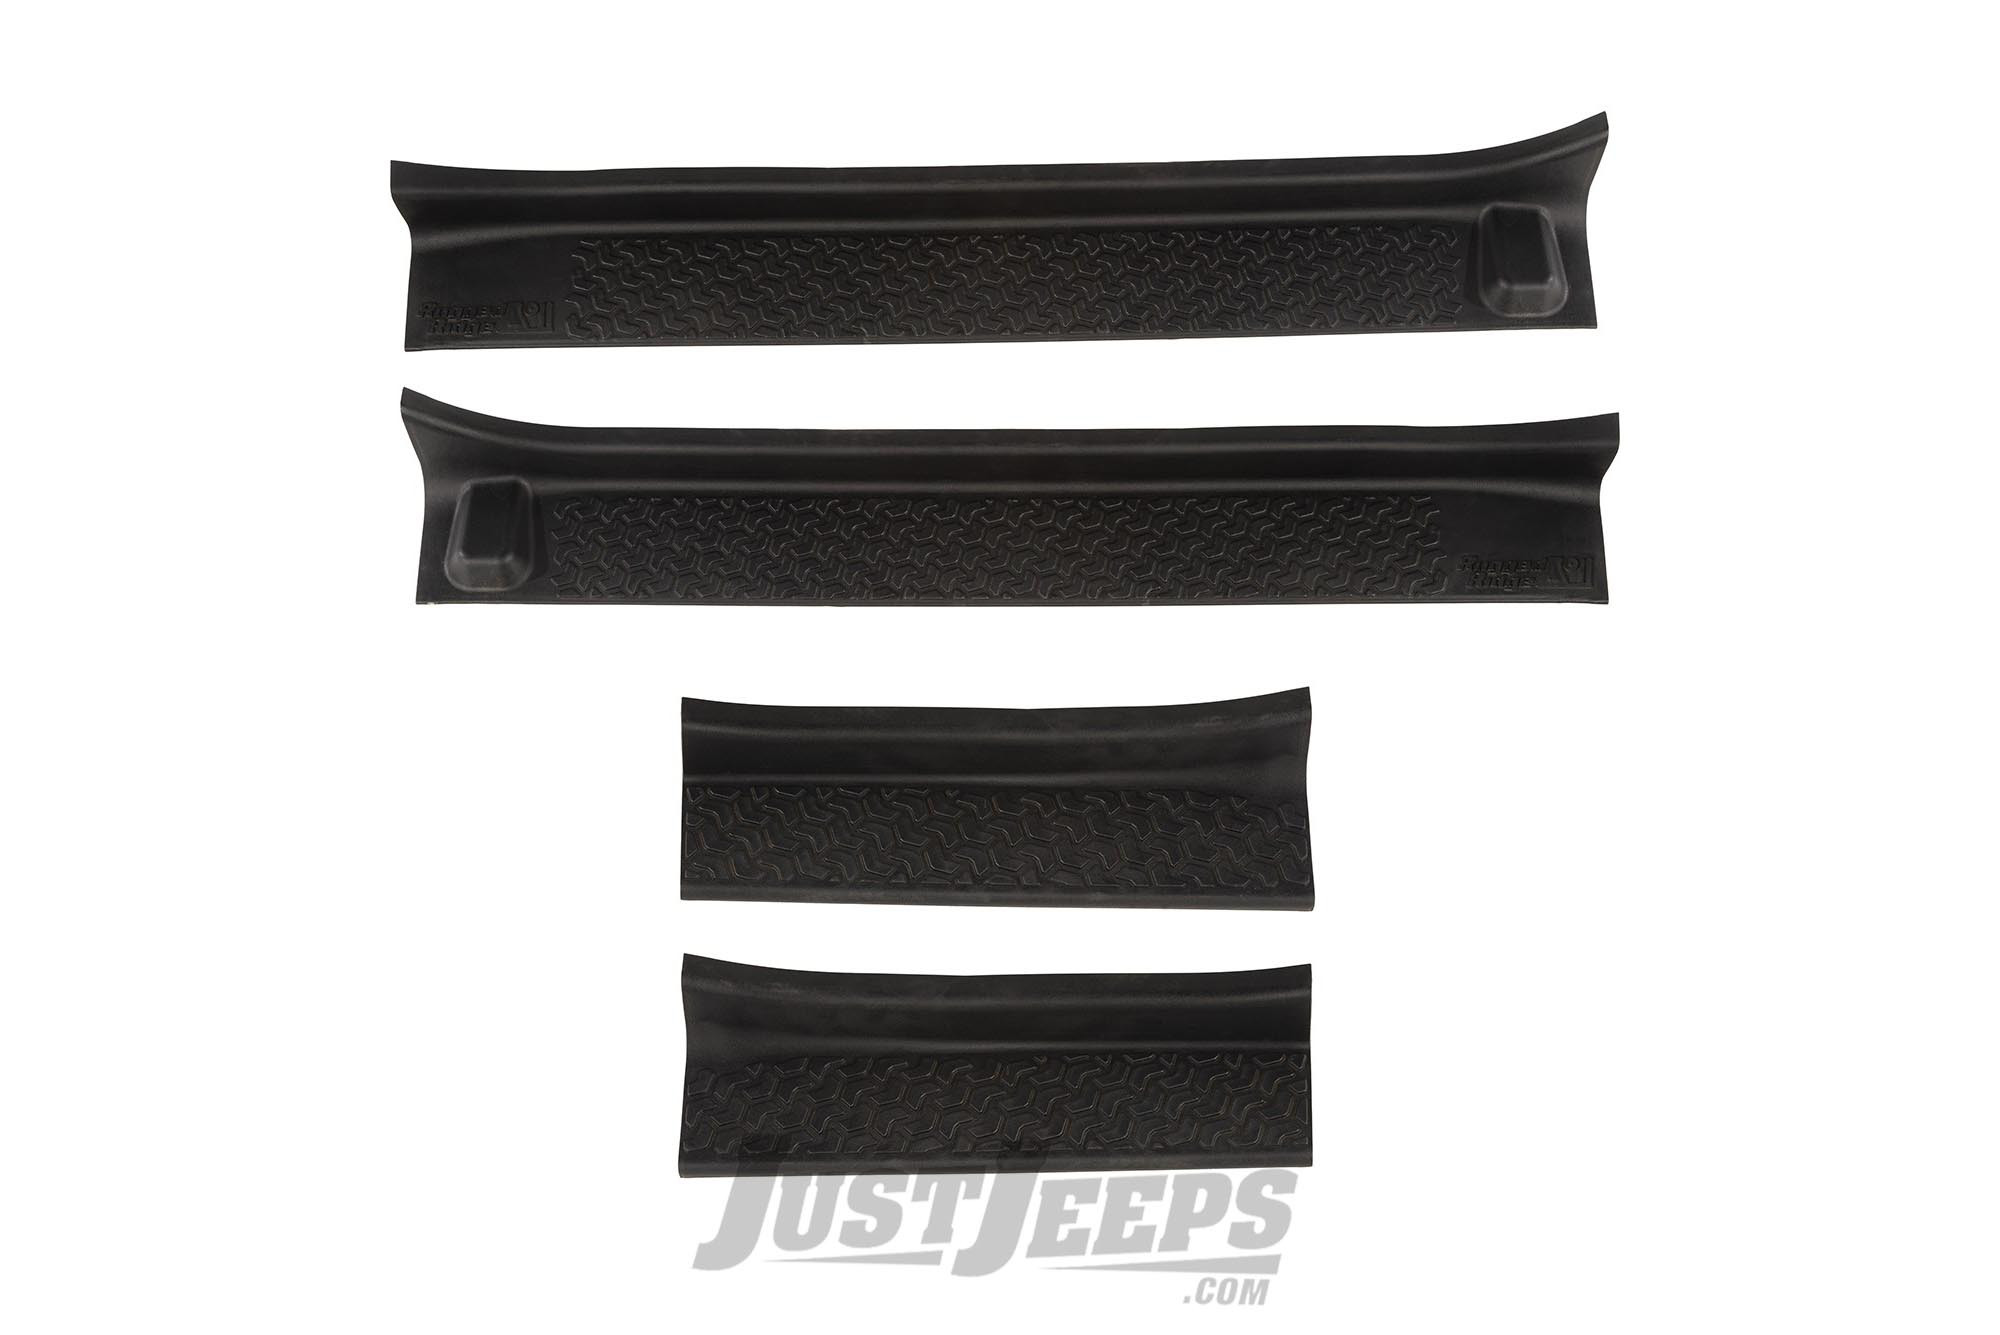 Rugged Ridge Front & Rear Entry Guards For 2018+ Jeep Gladiator JT & Wrangler JL Unlimited 4 Door Models 11216.32